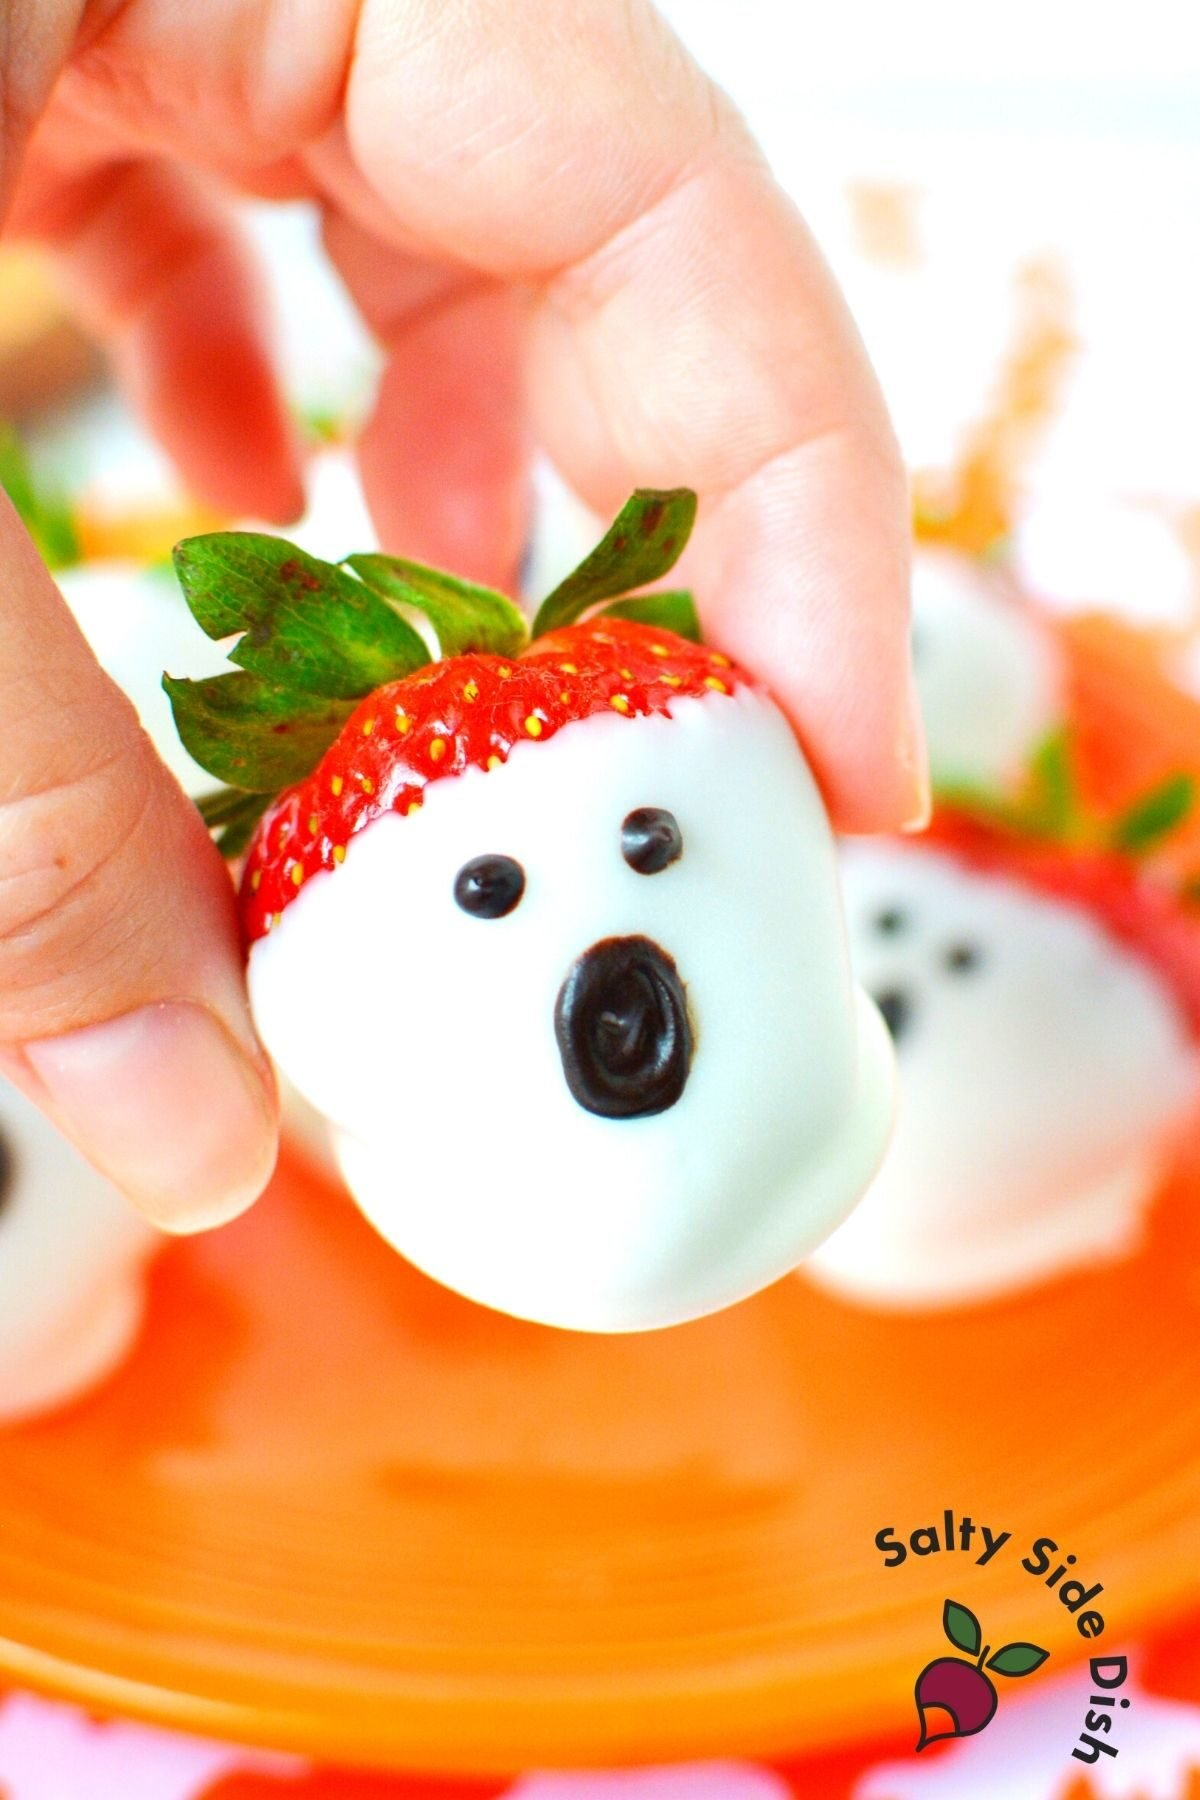 fingers holding a chocolate dipped strawberry that looks like a ghost with an orange plate in background.